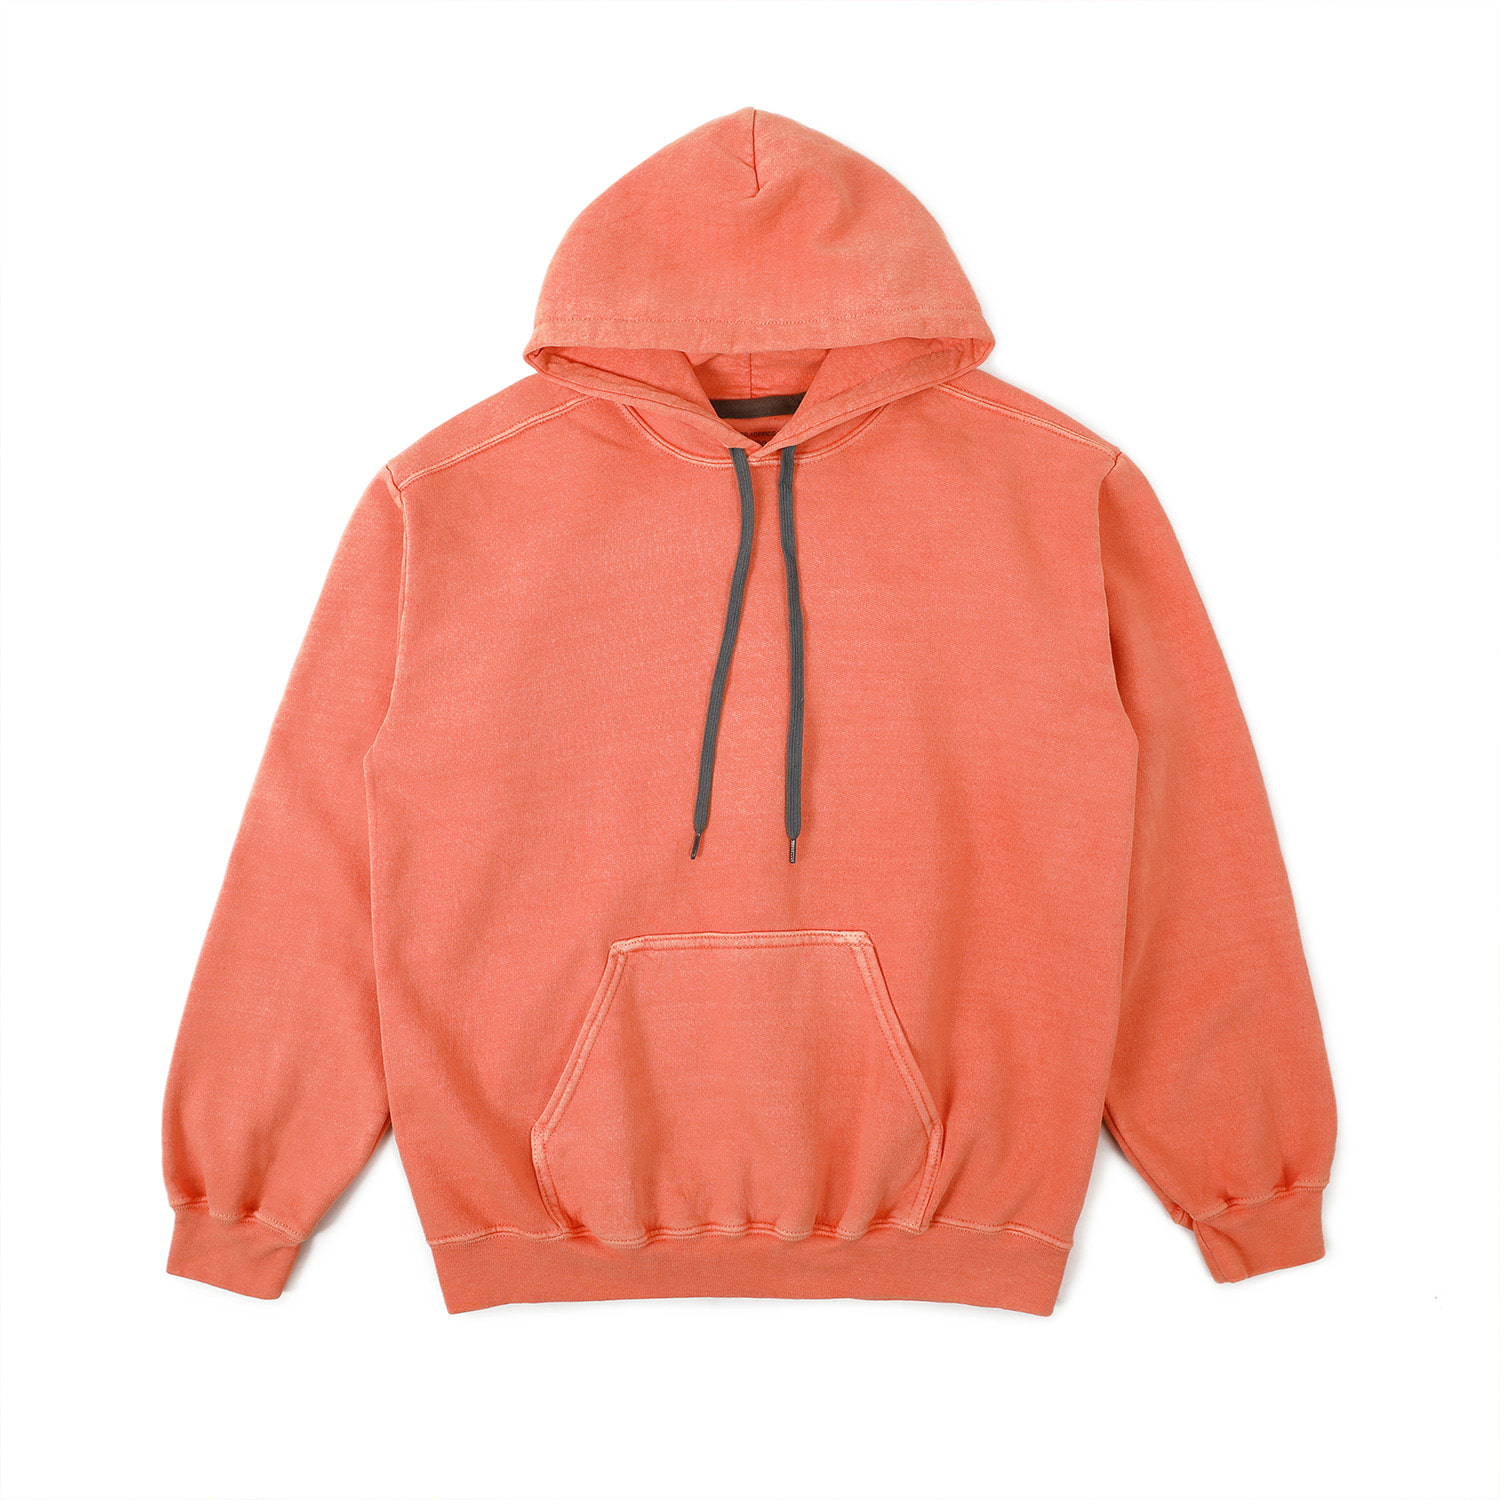 Laundry garment hoody (Orange)